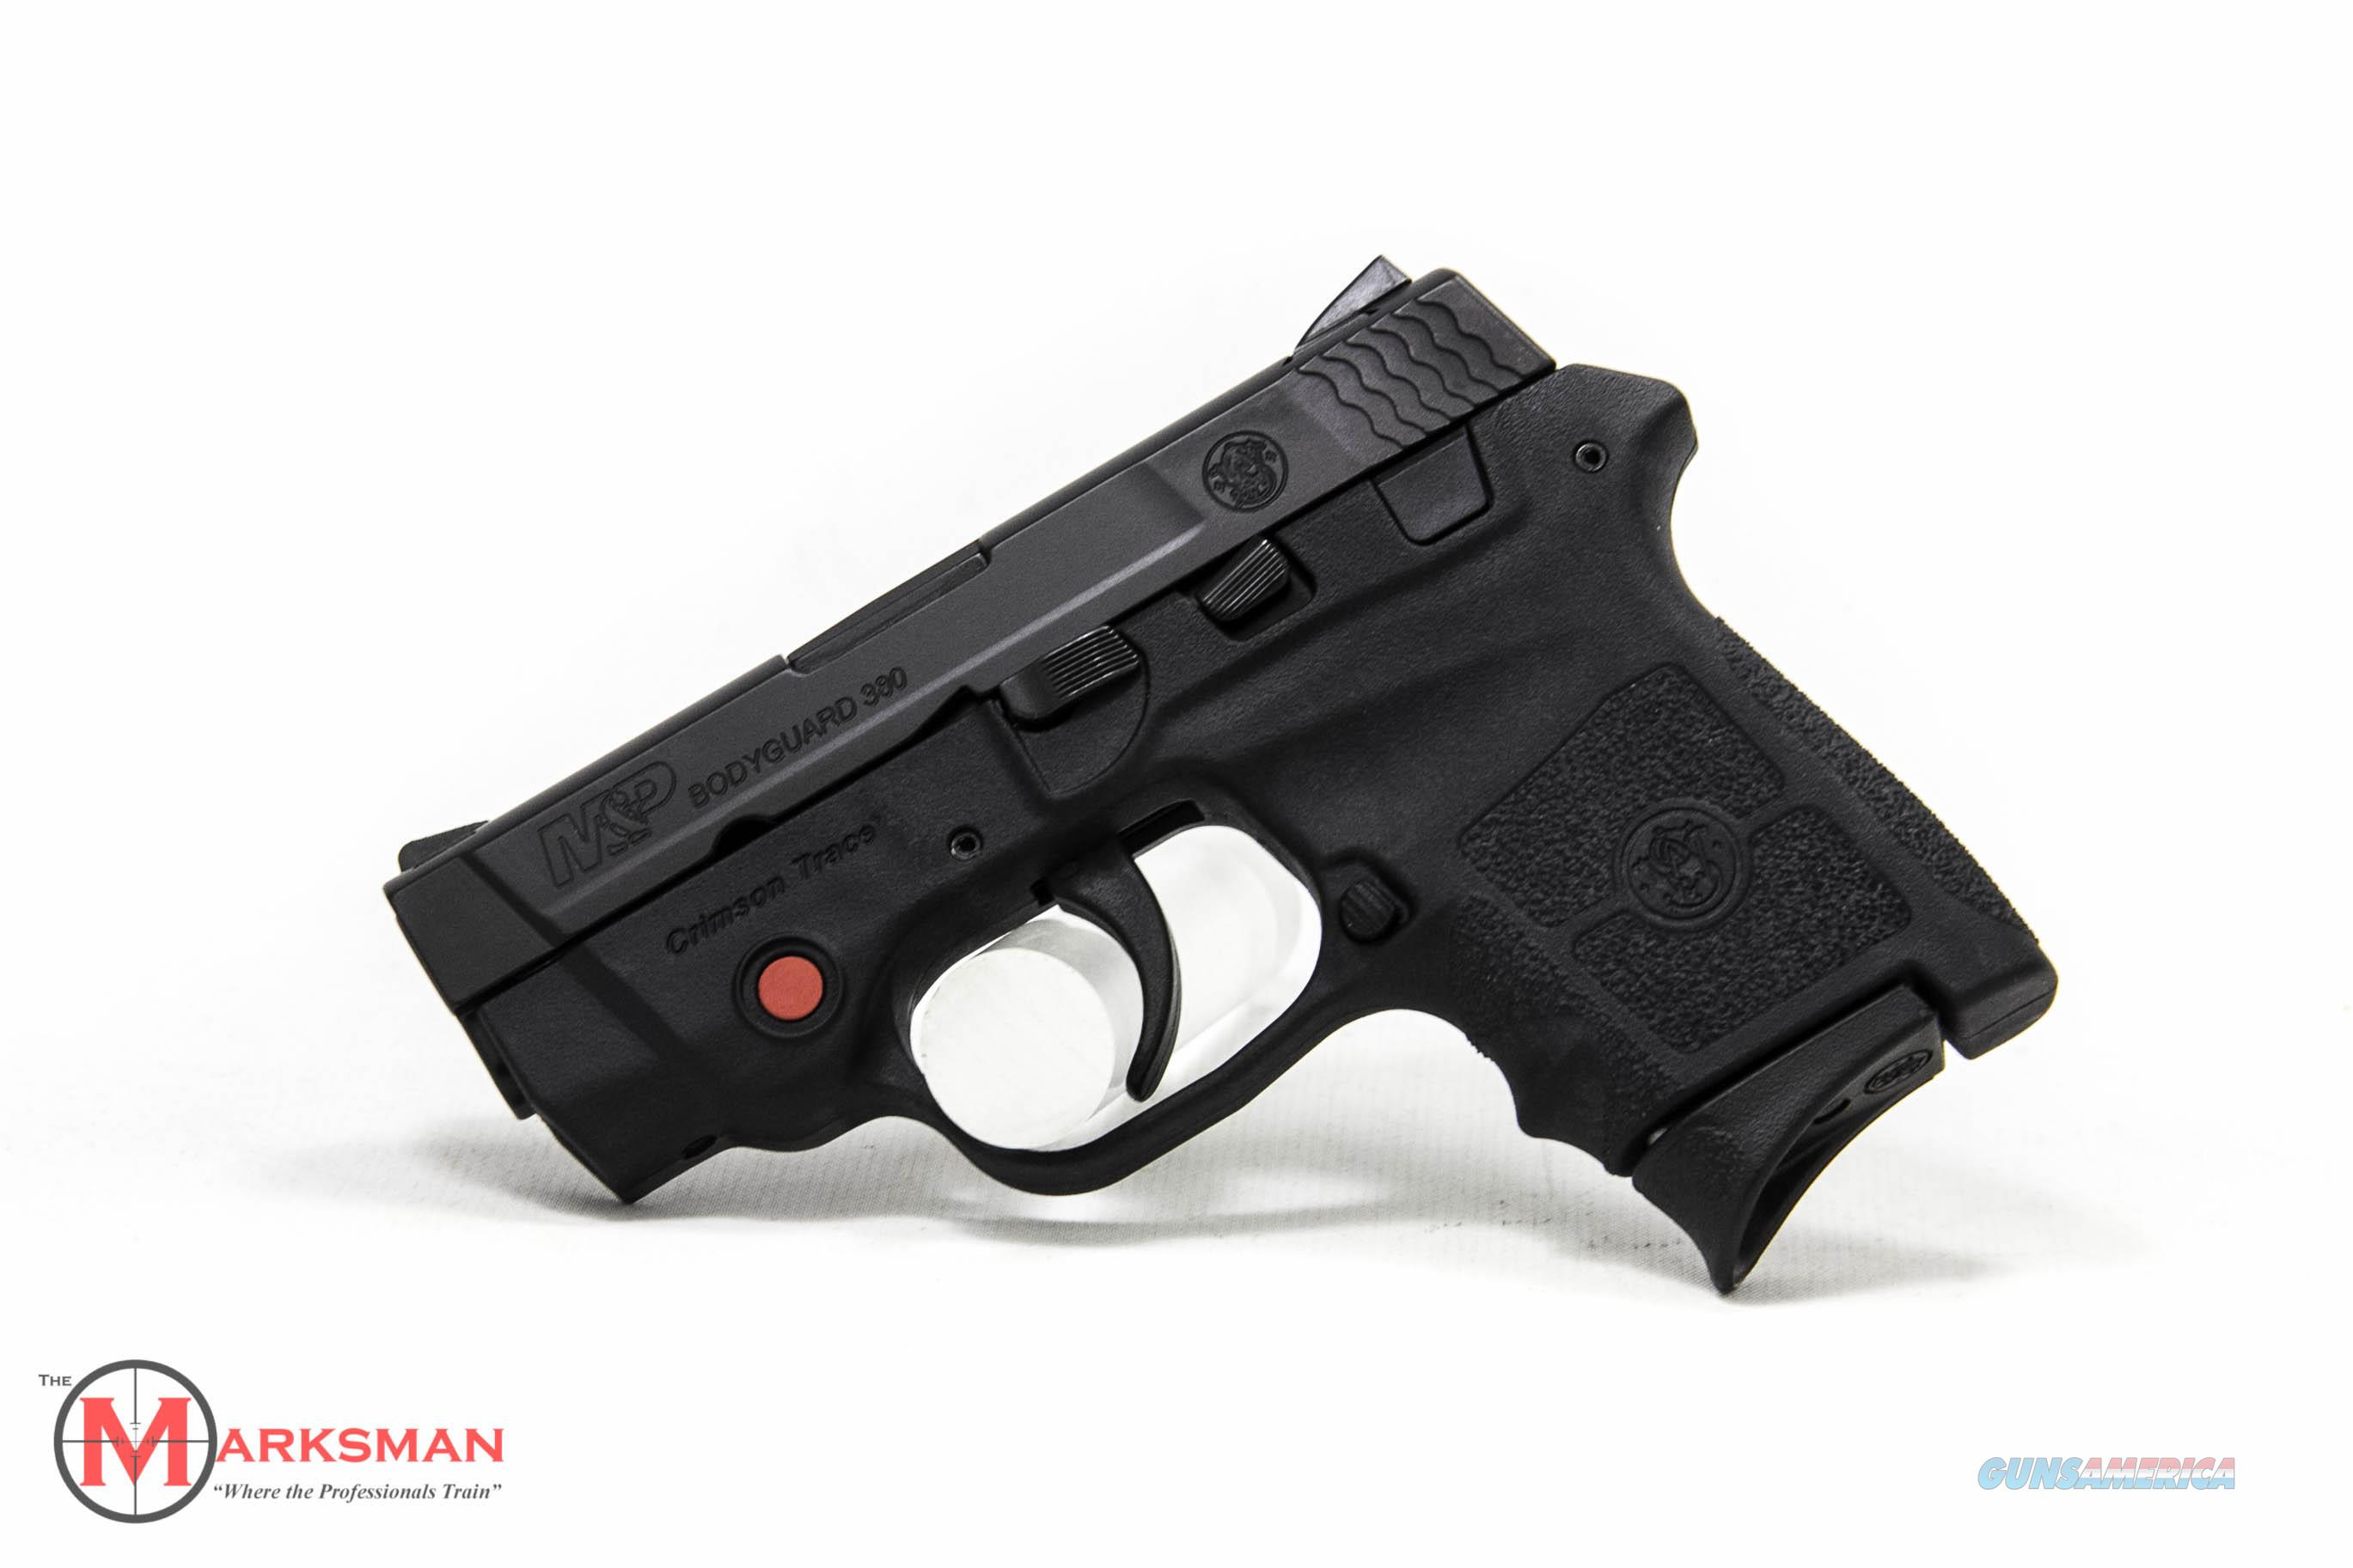 Smith and Wesson M&P Bodyguard .380 ACP NEW Crimson Trace Laser/No Thumb Safety  Guns > Pistols > Smith & Wesson Pistols - Autos > Polymer Frame